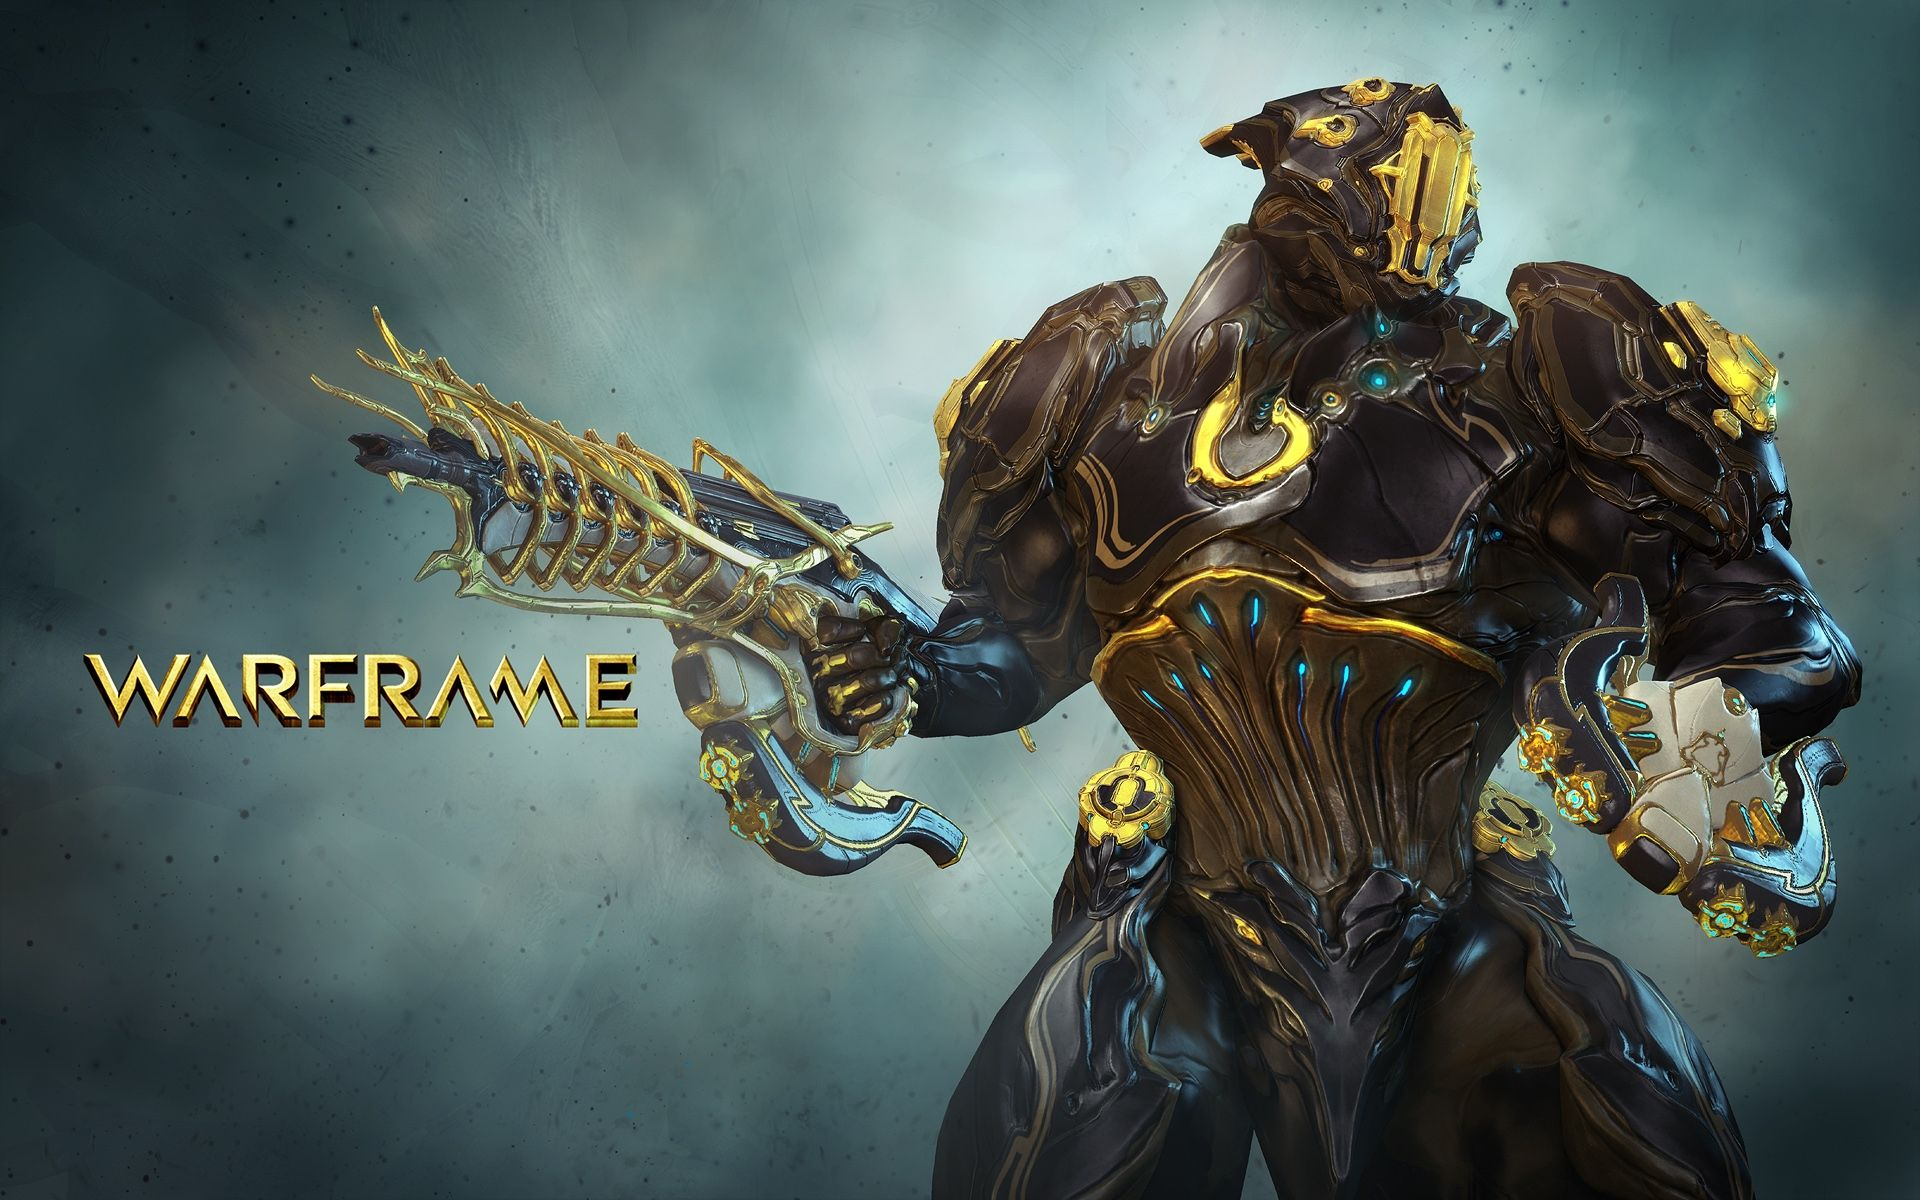 Lets Go To Warframe Generator Site New Hack Online 100 Hacks And Mods Computer Case Warhammer 40k Real Work Onlinegeneratorgamecom Add Up 99999 Platinum Each Day For Free Trust Me